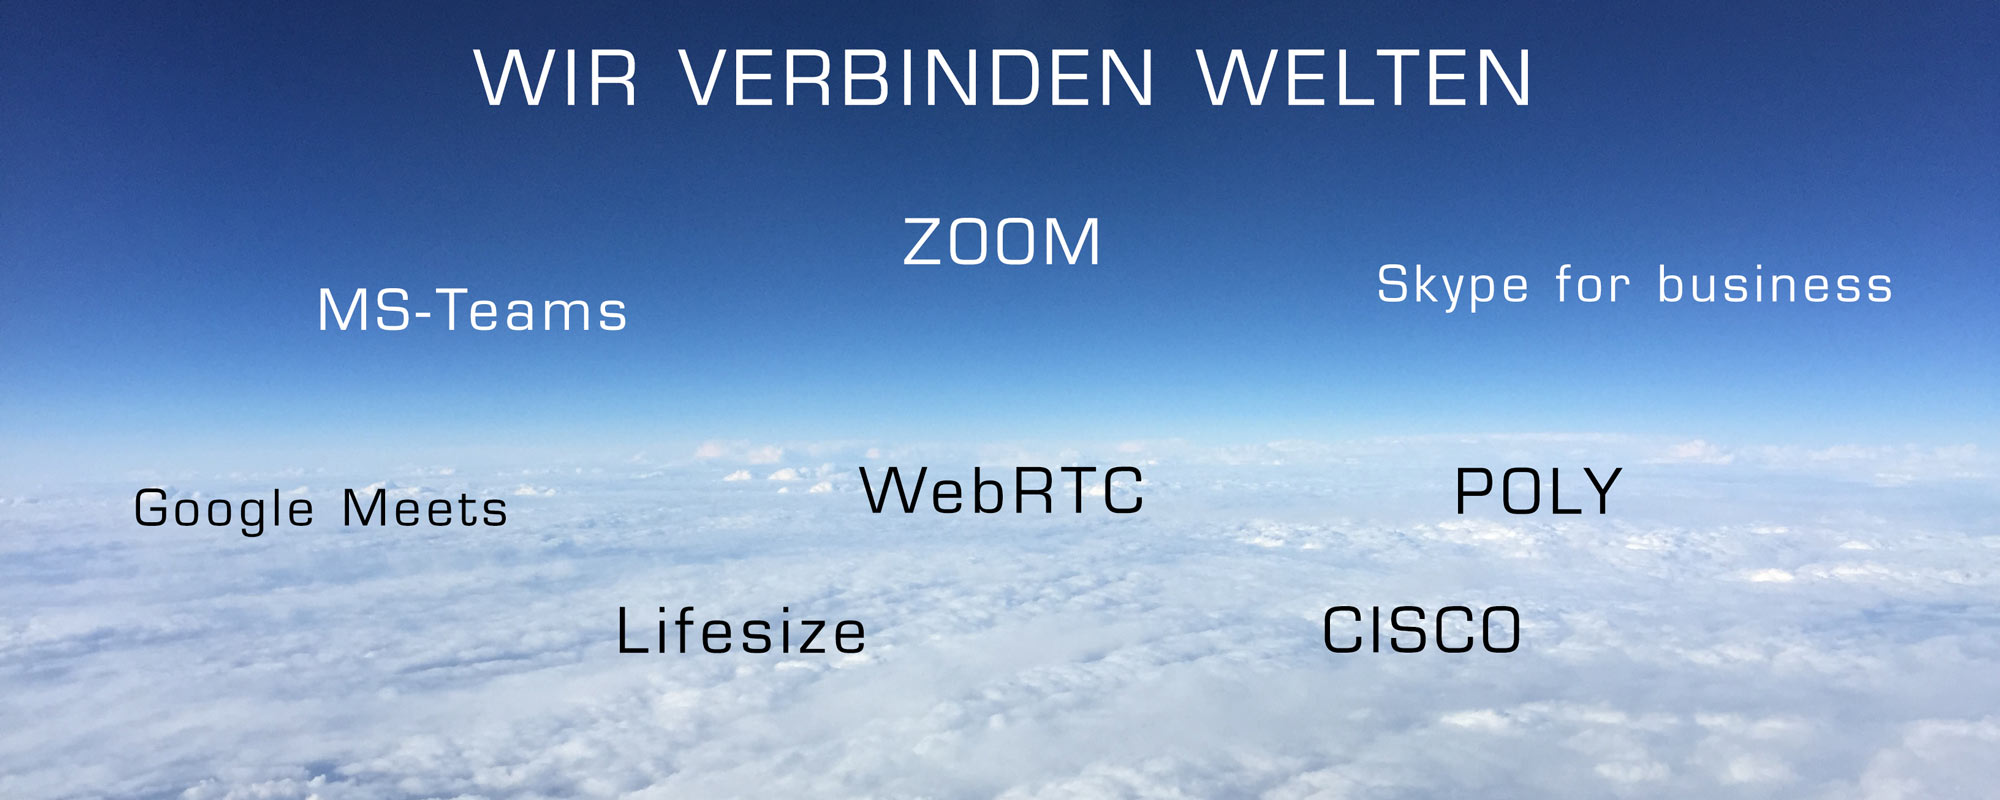 ZOOM, MS-Teams, Polycom, Poly, Cisco, Lifesize, wir vereinen sie alle